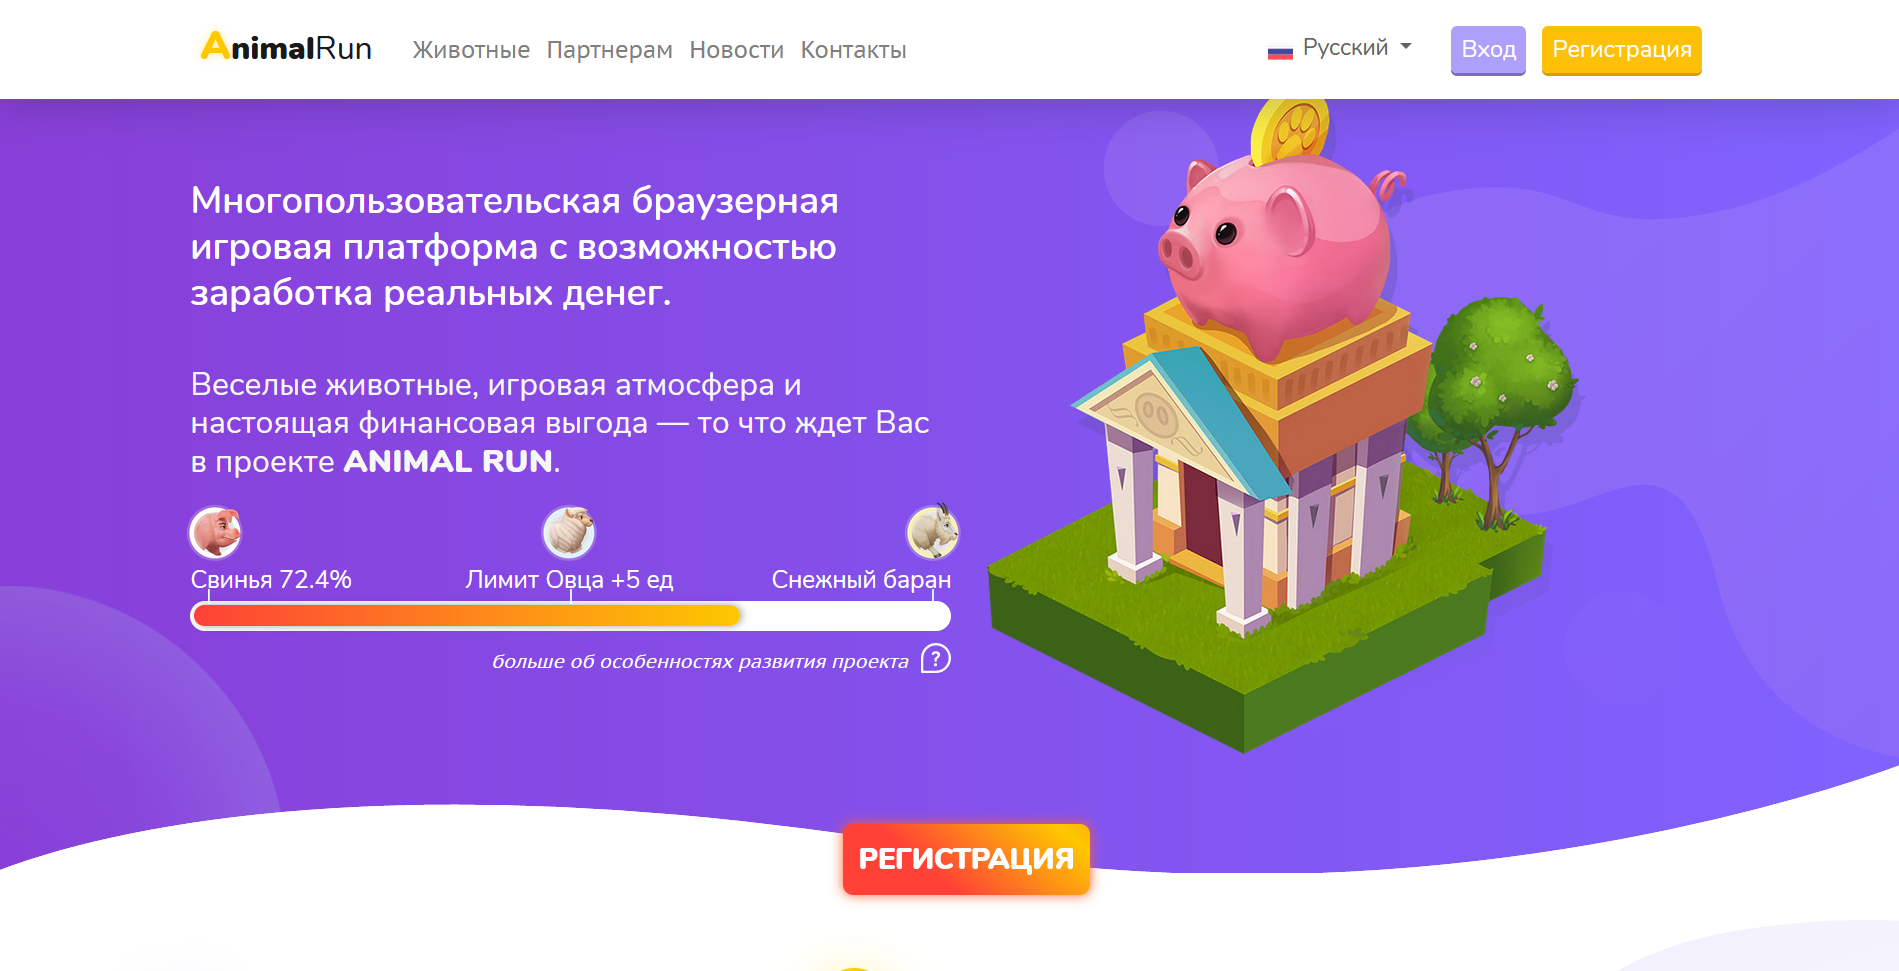 Animal Run - Animal-run.org